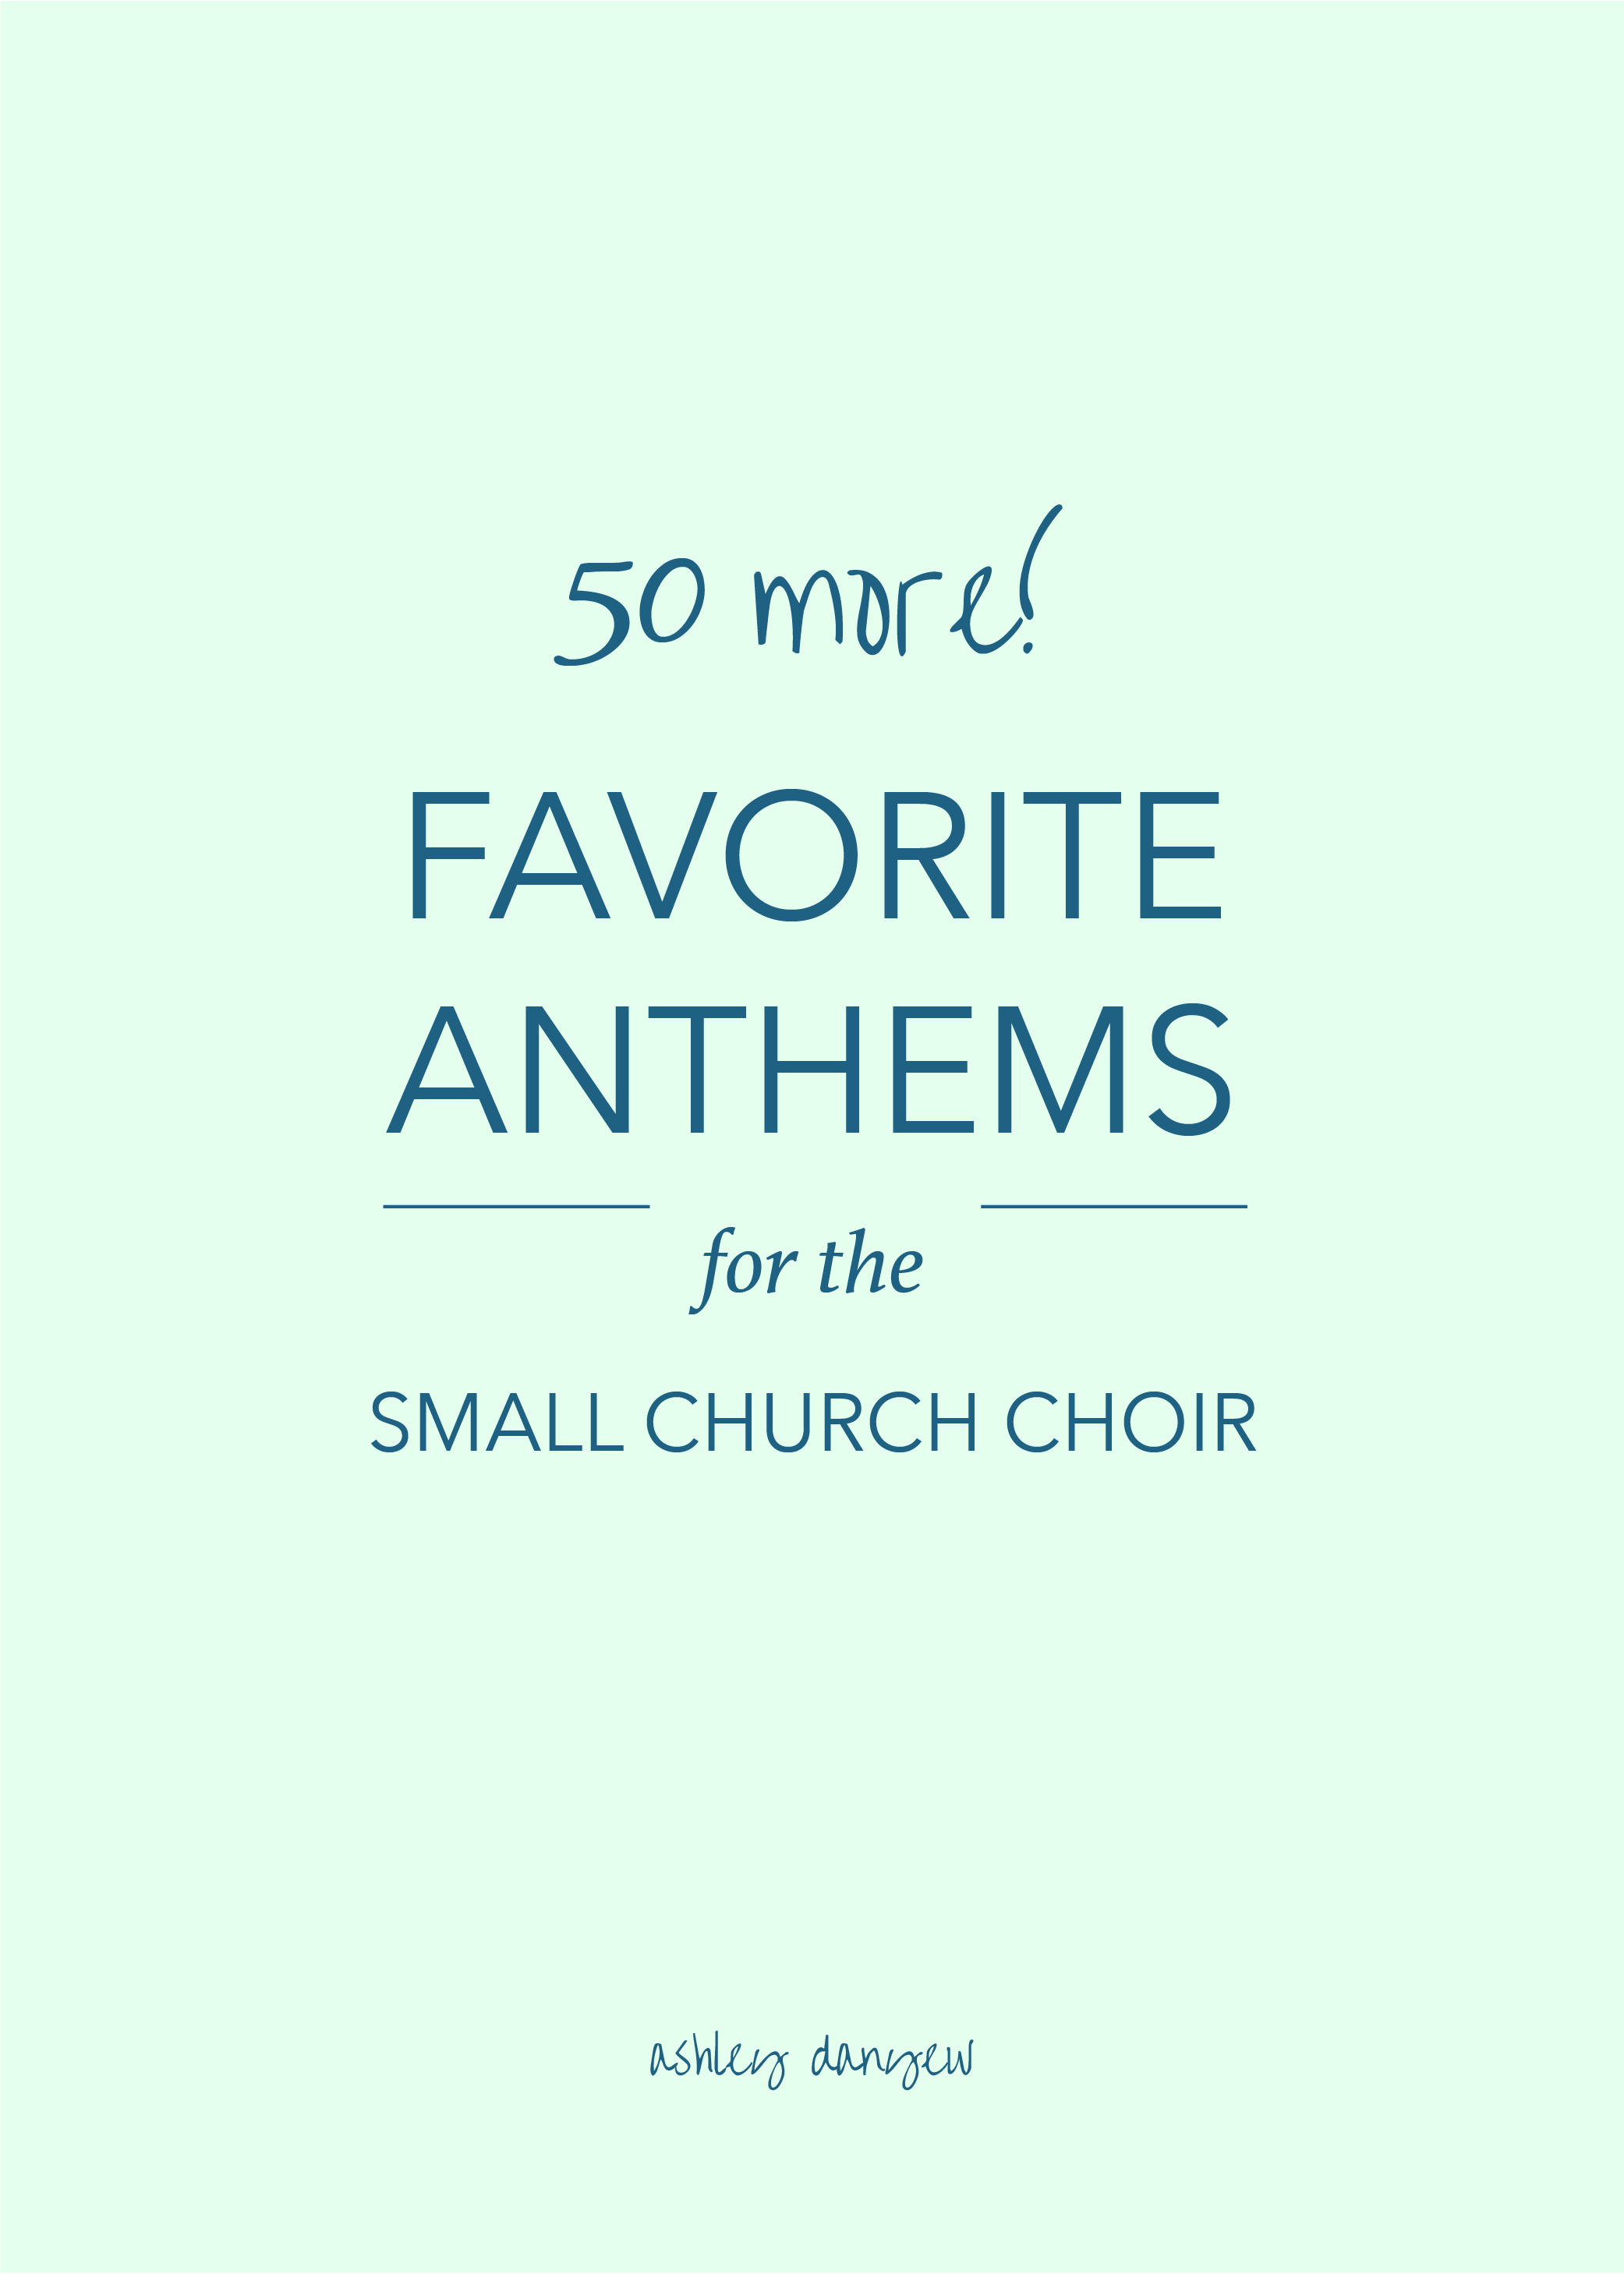 Copy of 50 (more!) Favorite Anthems for the Small Church Choir